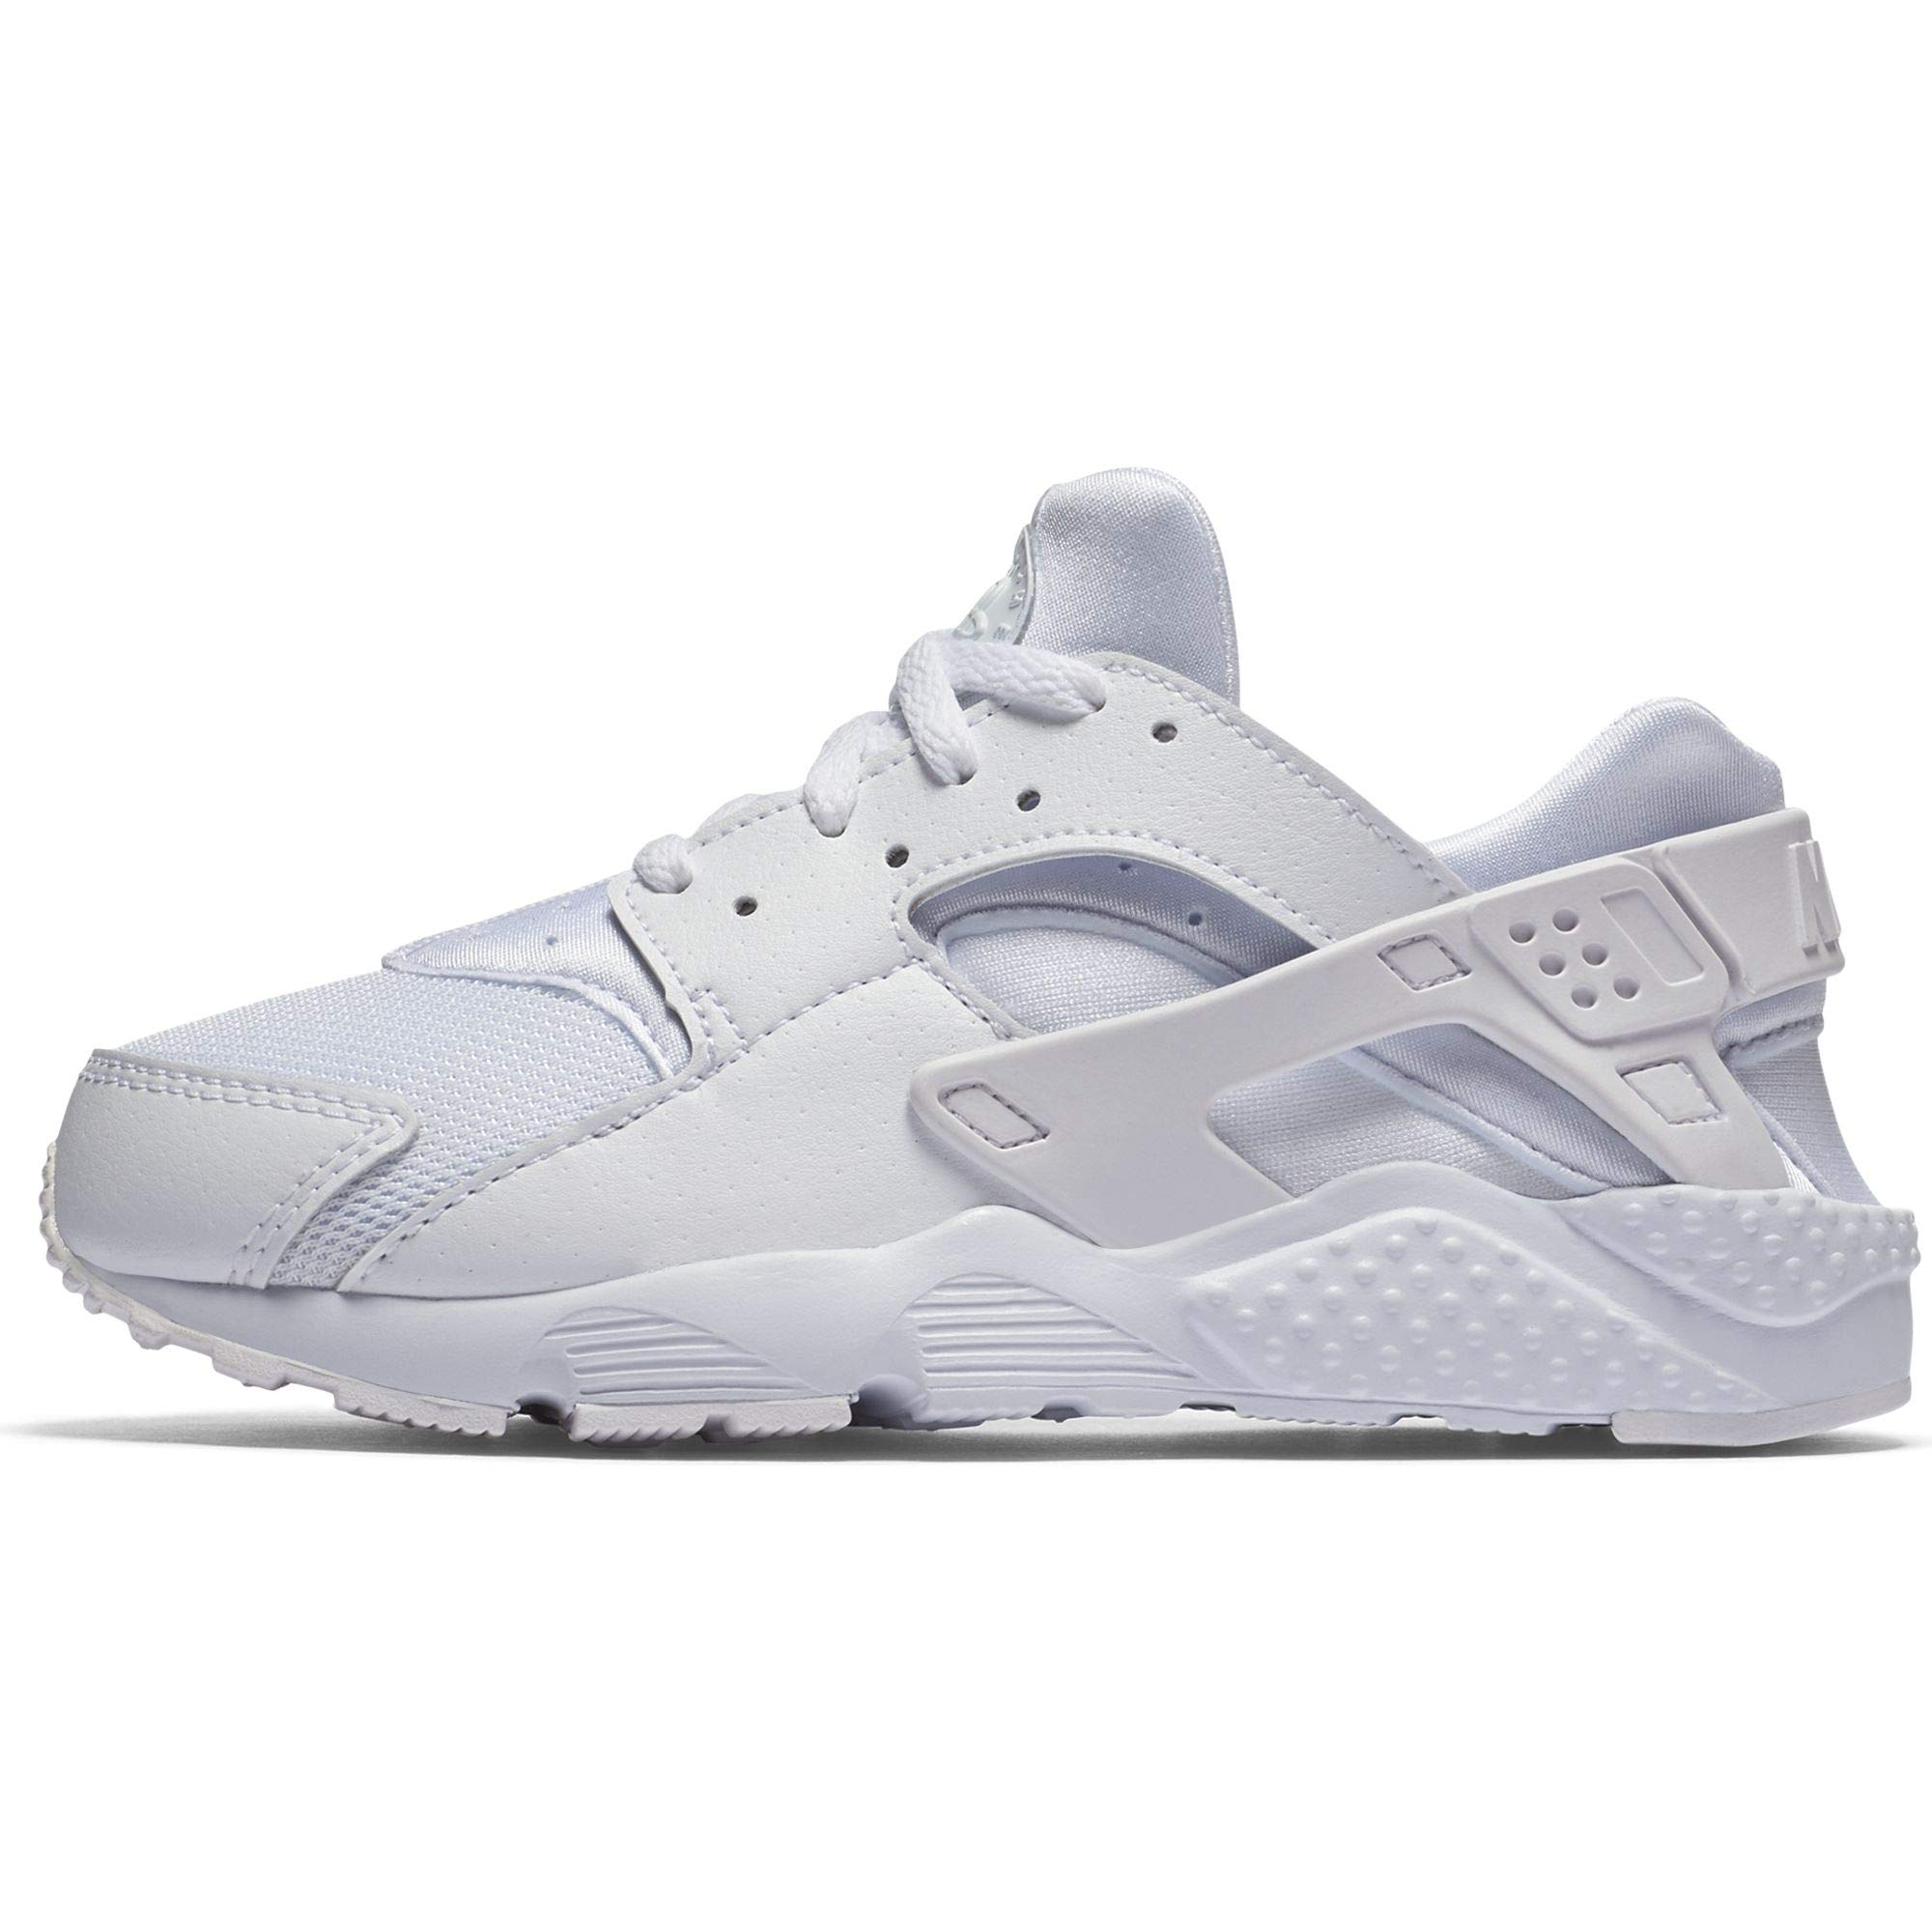 cd2c53f8b1 Galleon - Nike Huarache Run PS Little Kids Running Shoes, 1Y, White/Gym  Red-Bright Crimson